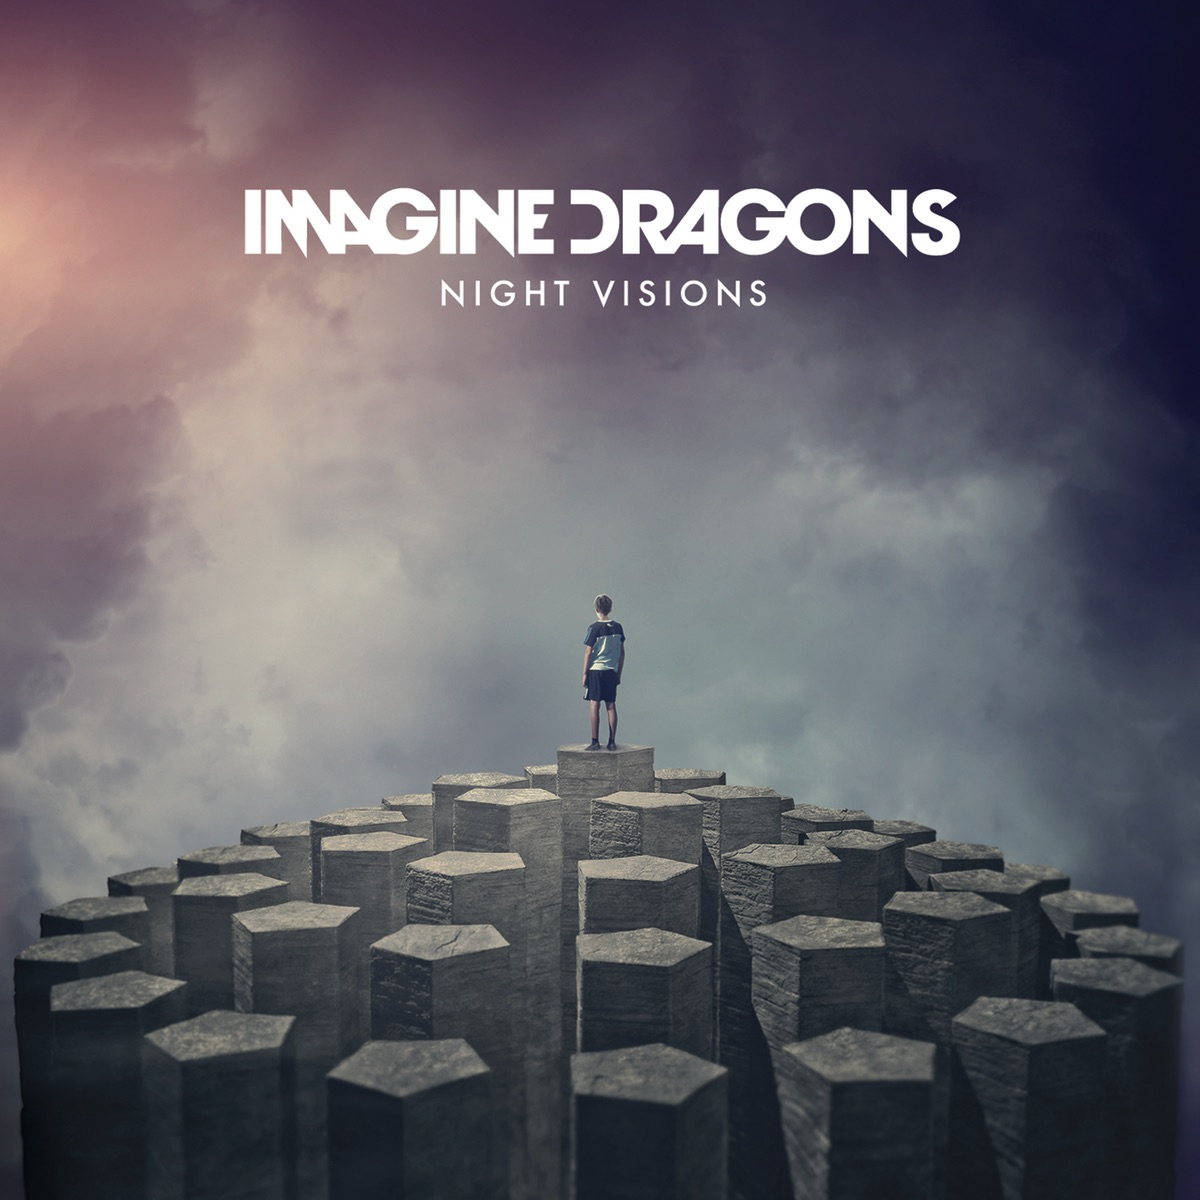 Night Visions Imagine Dragons CD cover